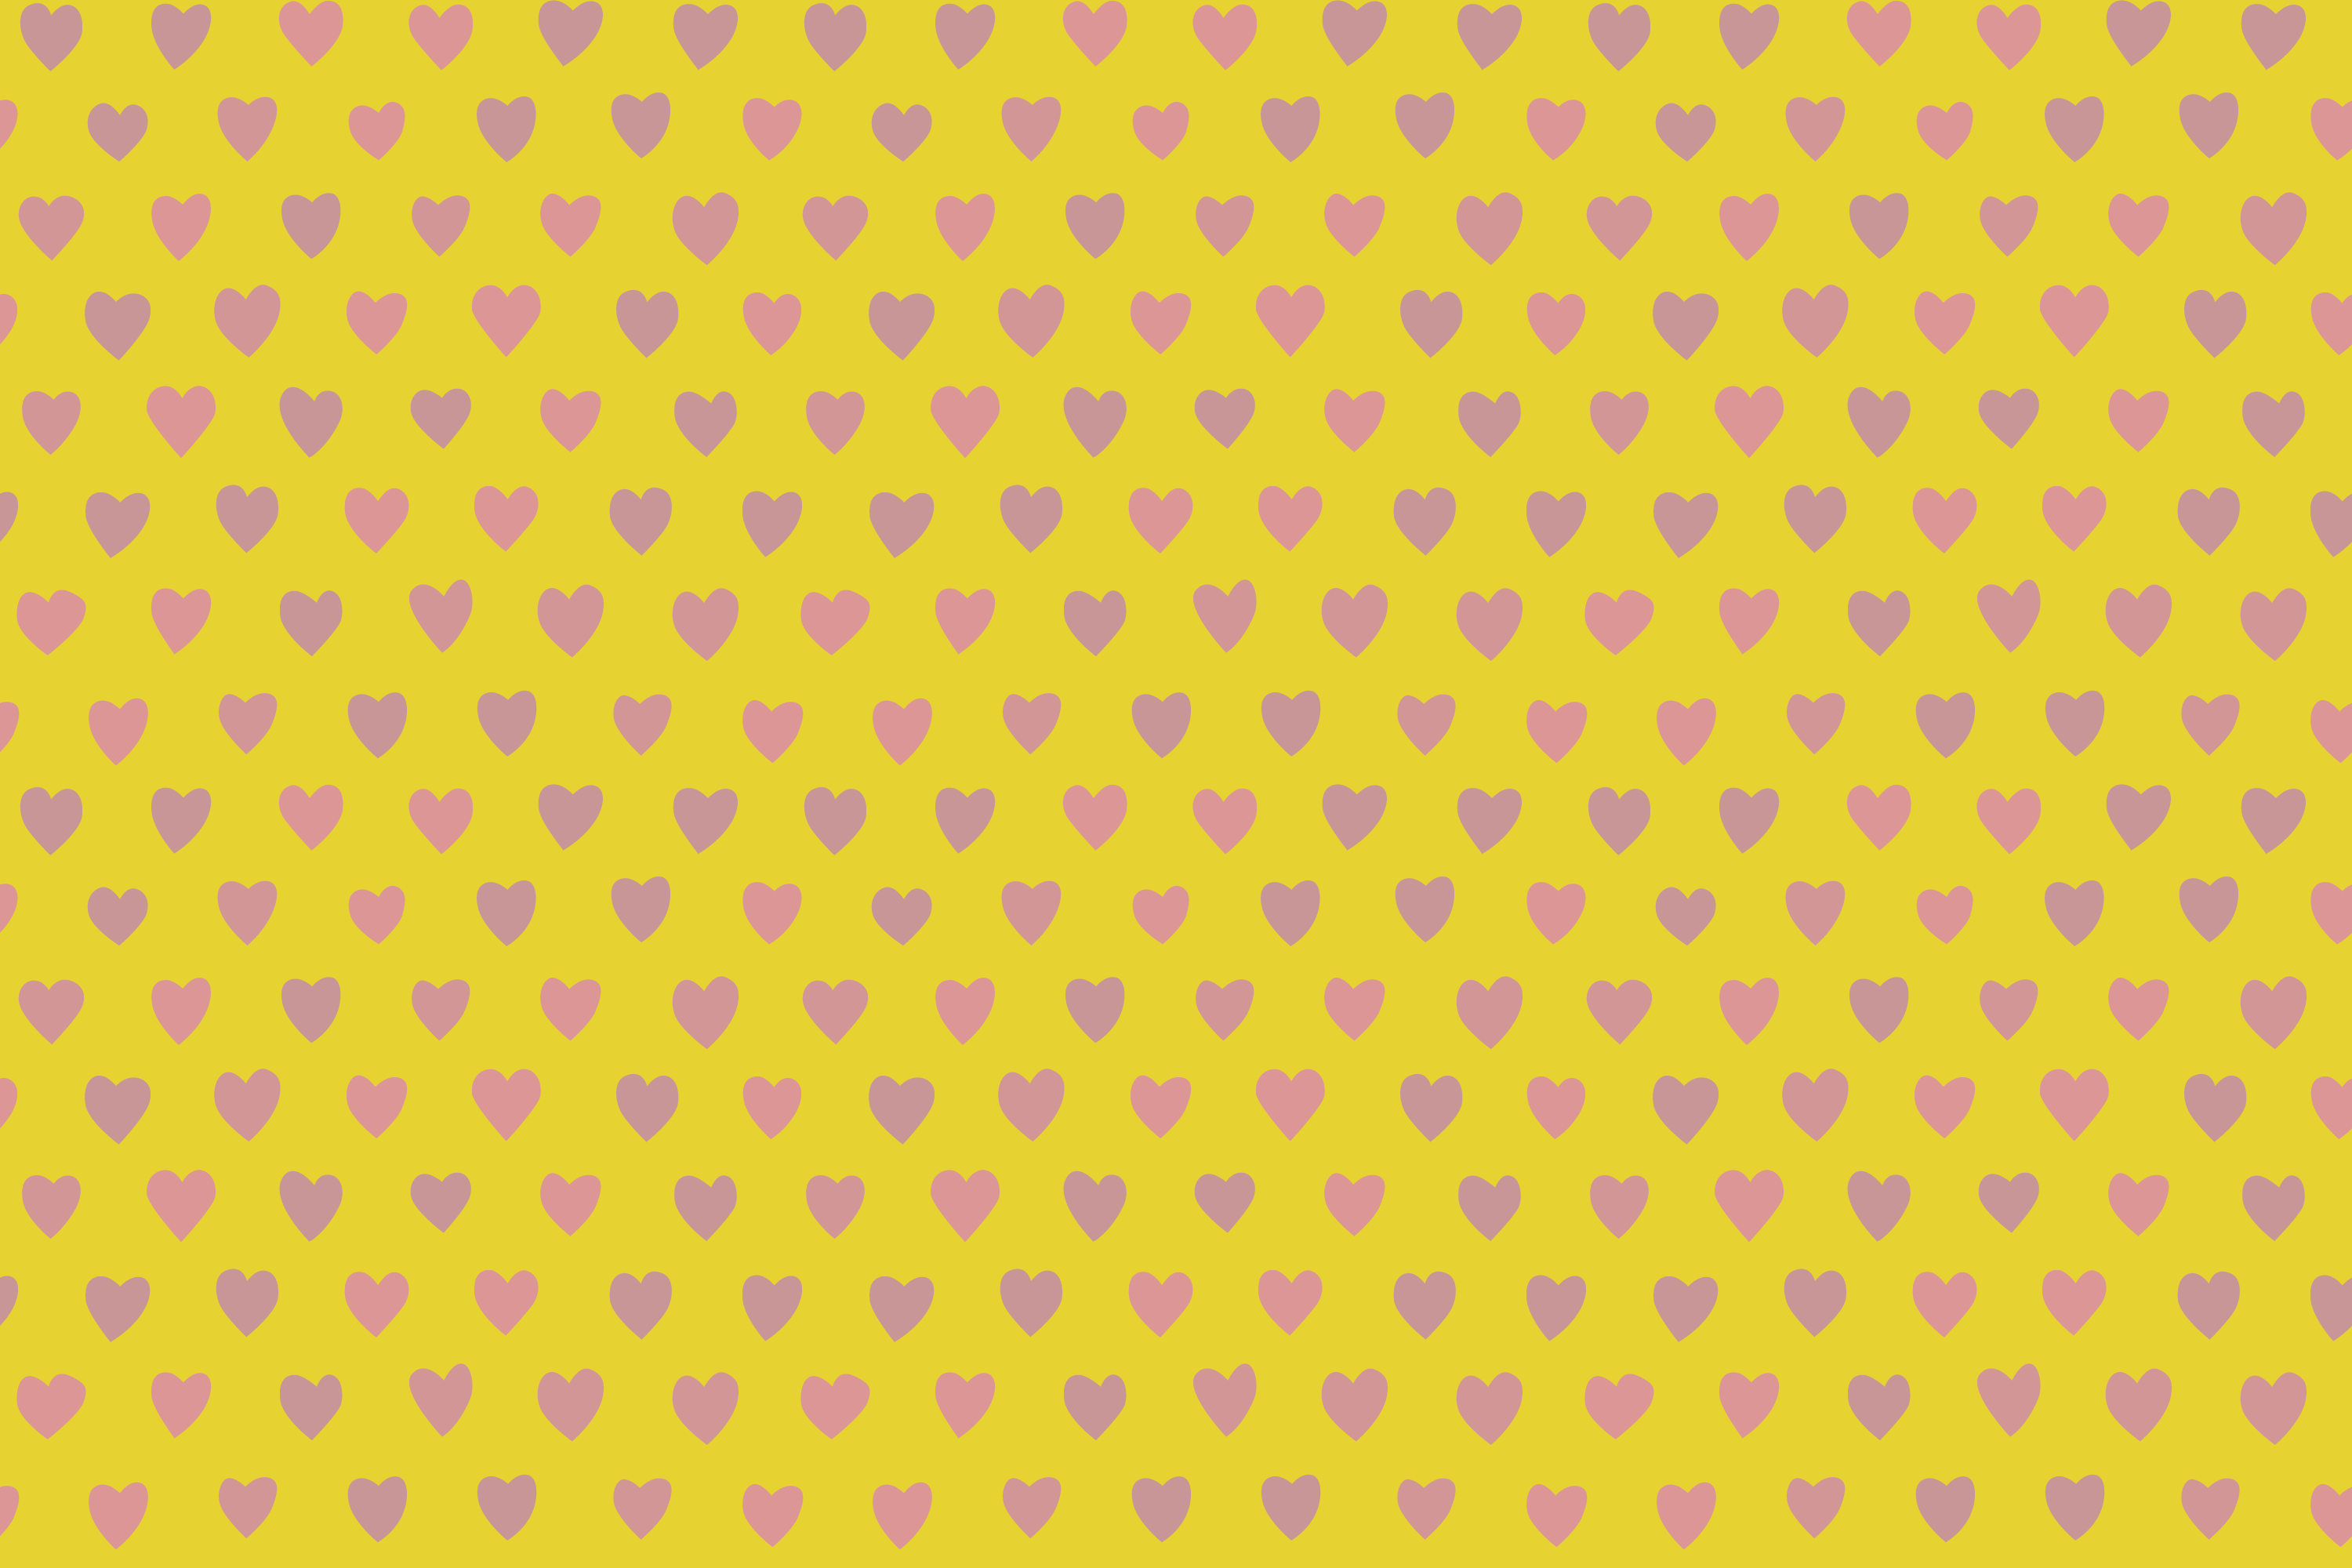 yellow background hearts-patternpictures-1912